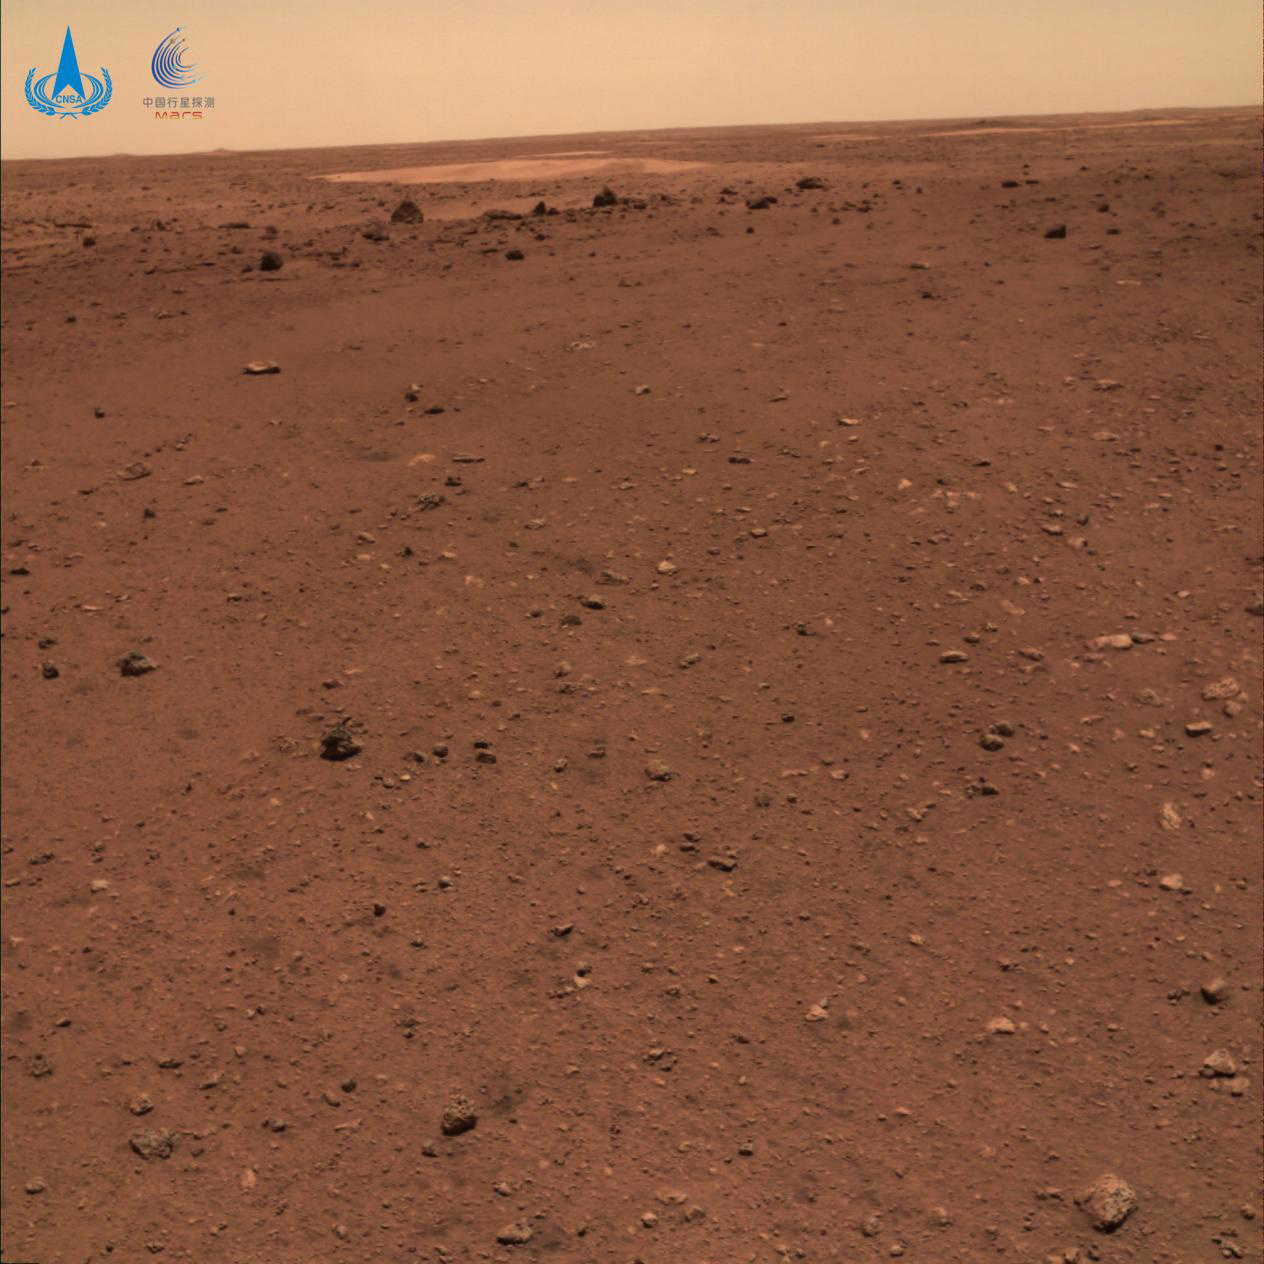 China releases first images taken by Zhurong Mars rover-CnTechPost